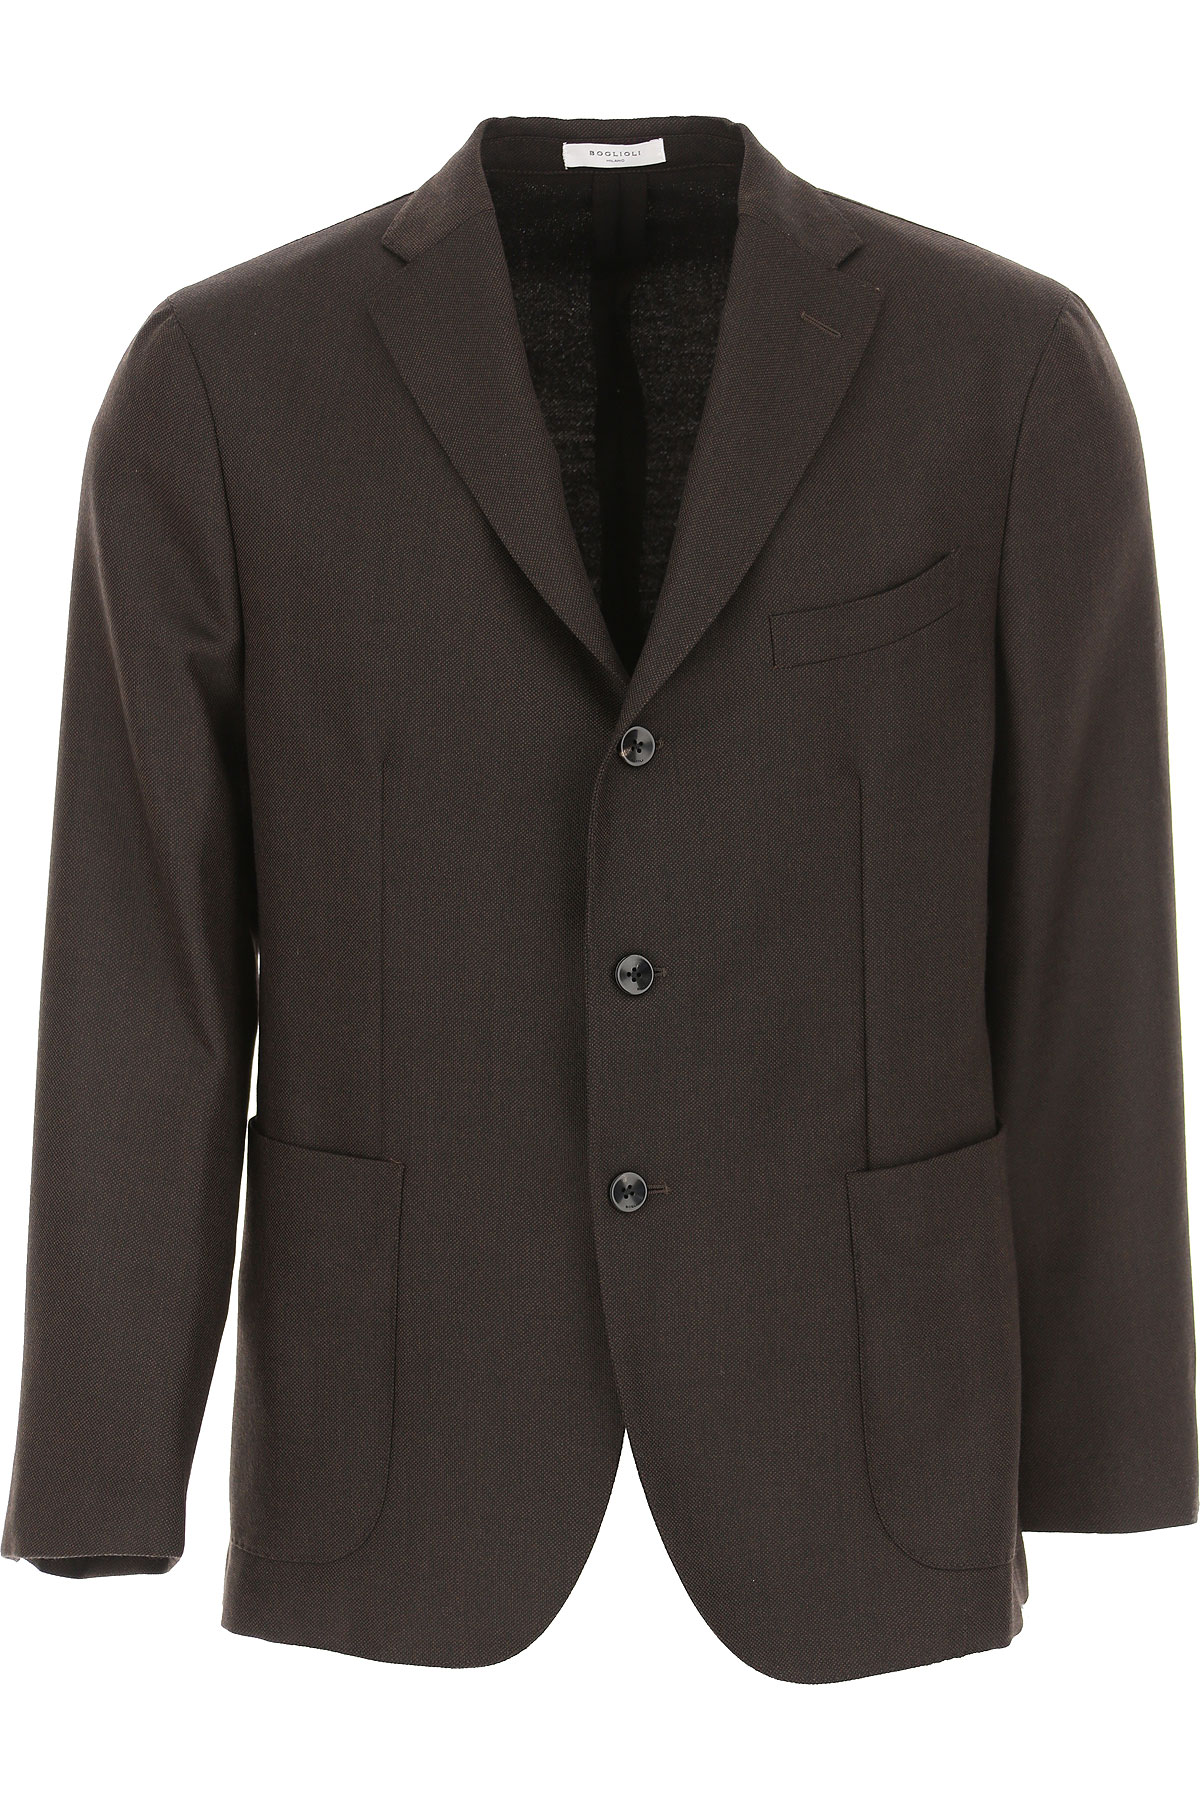 Boglioli Blazer for Men, Sport Coat On Sale, Dark Brown, Virgin wool, 2019, M XL XXL